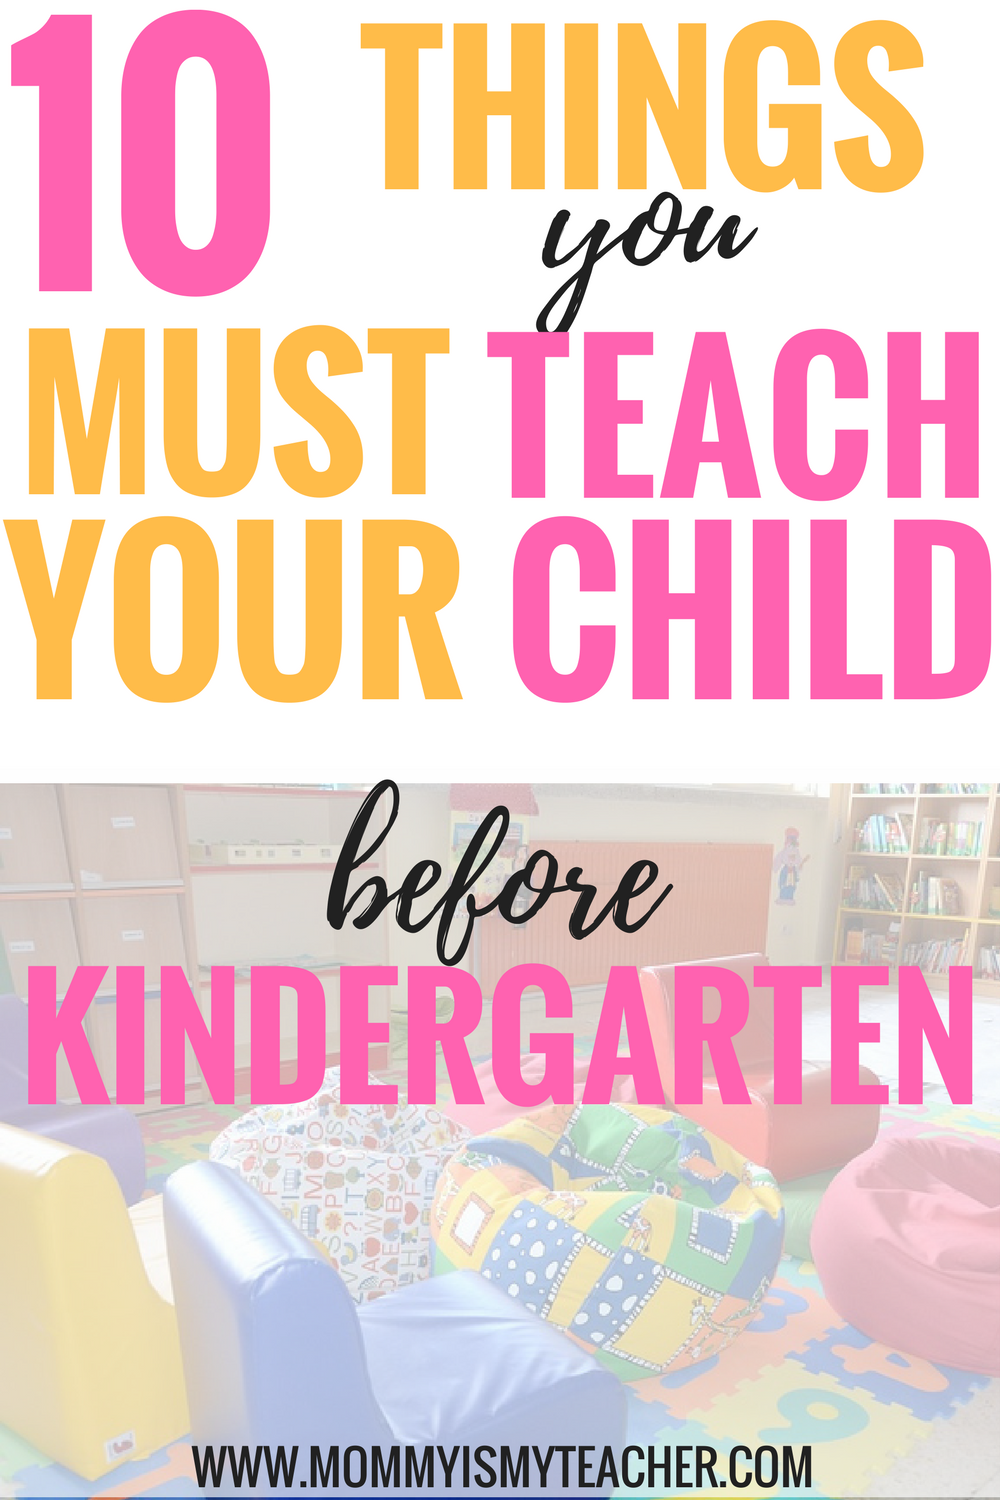 Wow! I didn't know my child needs to know all of these for kindergarten readiness! tip #5 is great! It will definitely help my child pass all the kindergarten readiness assessments.